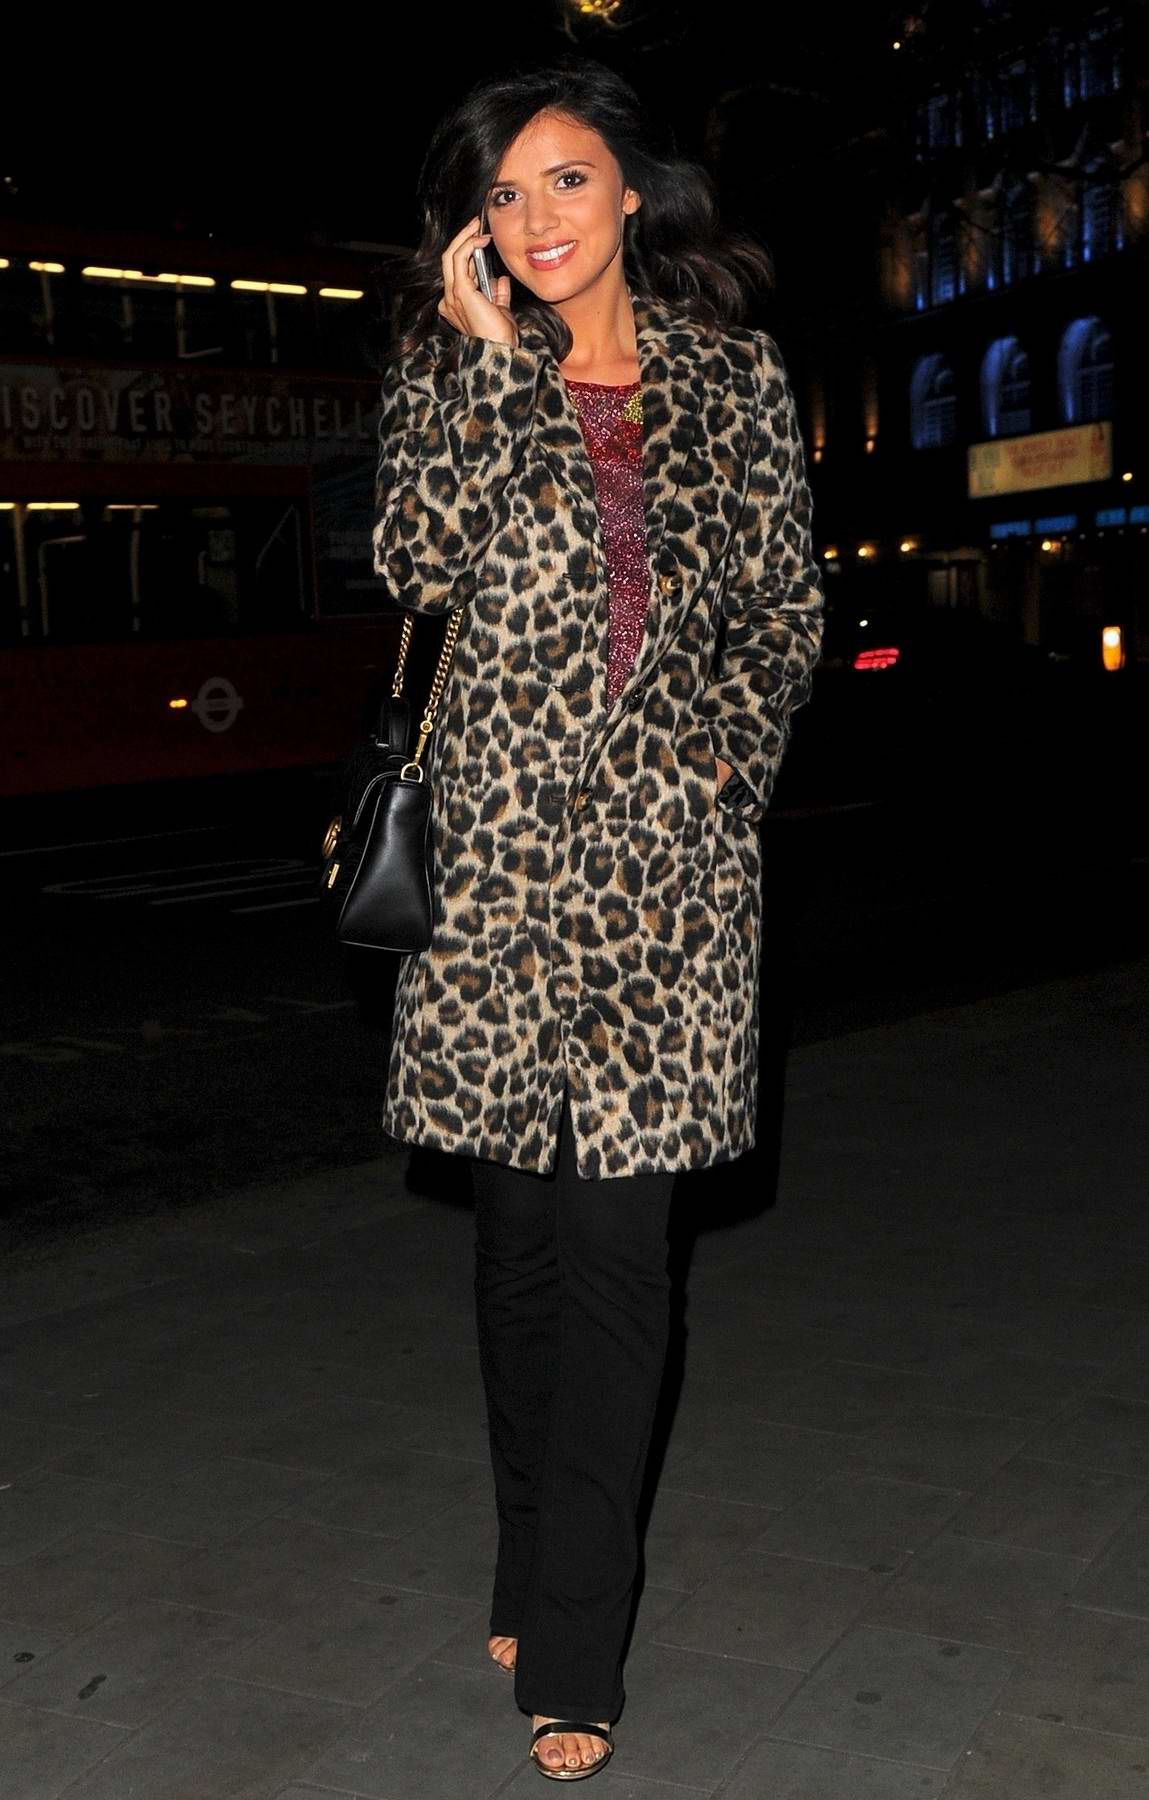 Lucy Mecklenburgh wears a leopard print coat while out and about in London